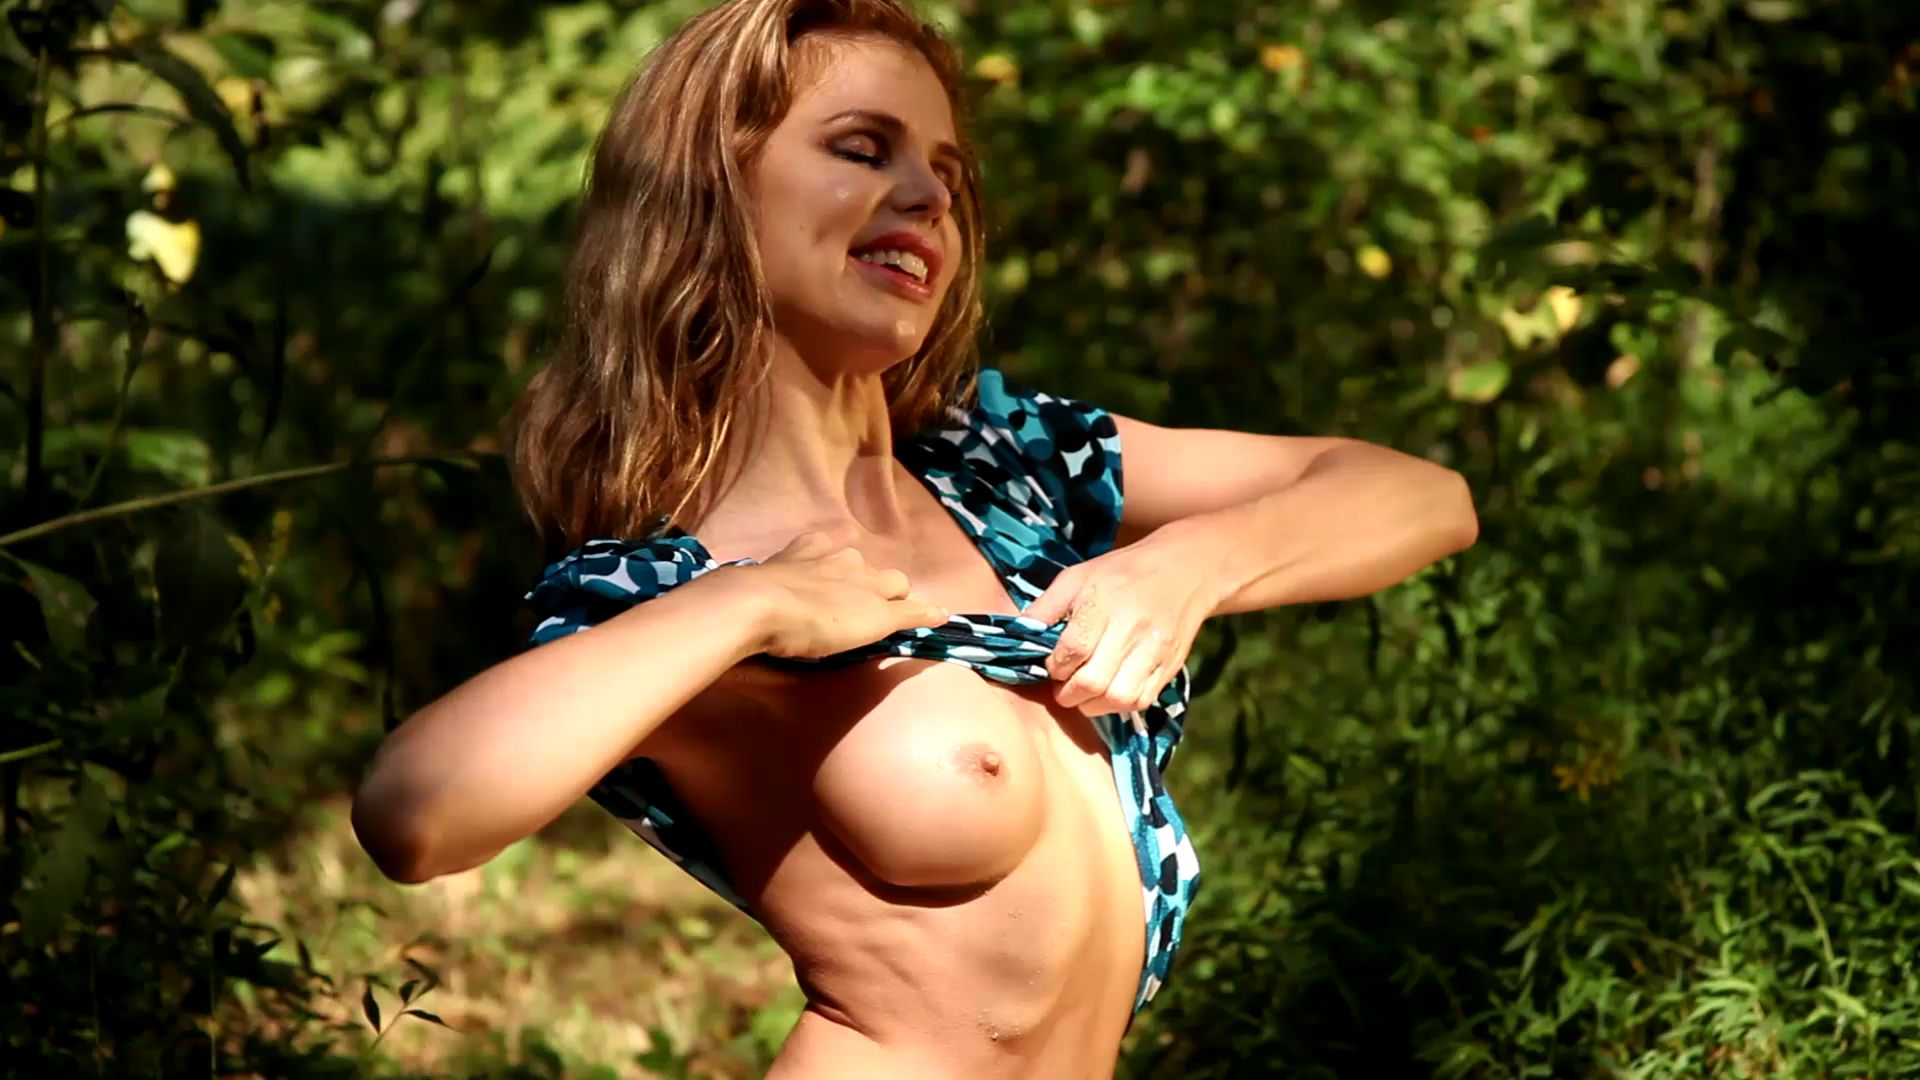 Candle Boxxx in quicksand Candle-aroused-in-real-quicks_12